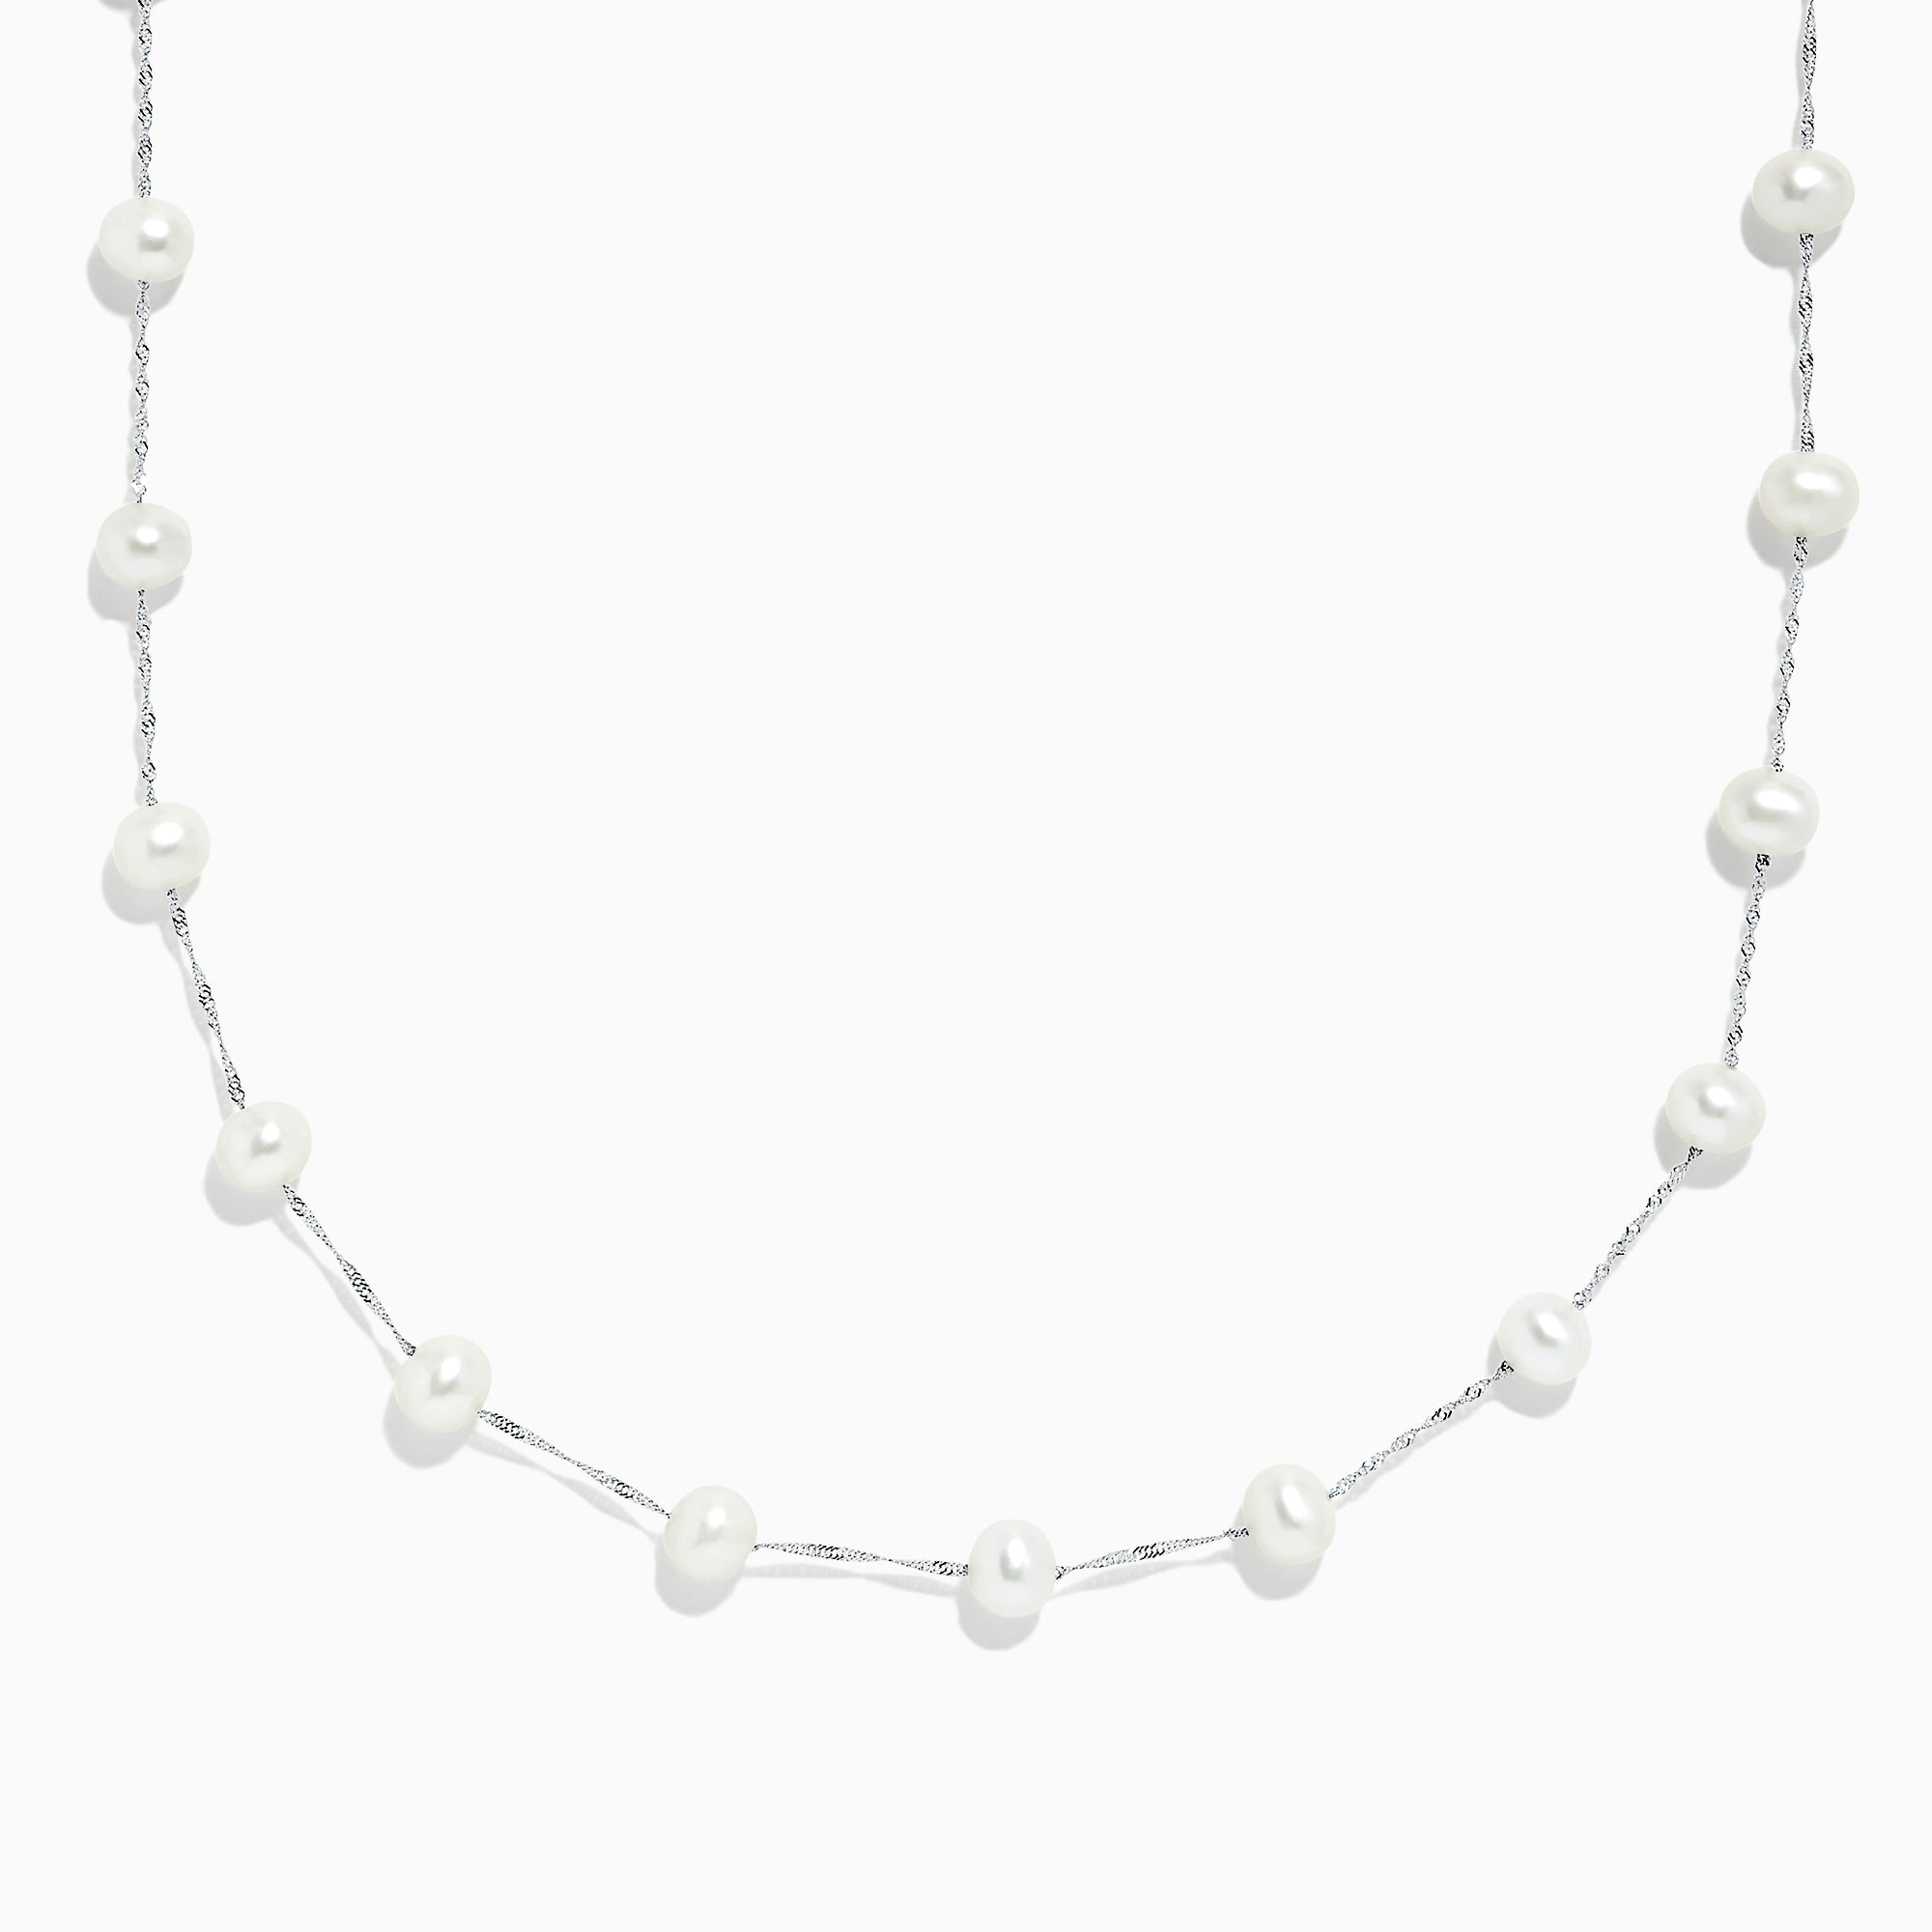 Effy 14K White Gold Cultured Fresh Water Pearl Necklace